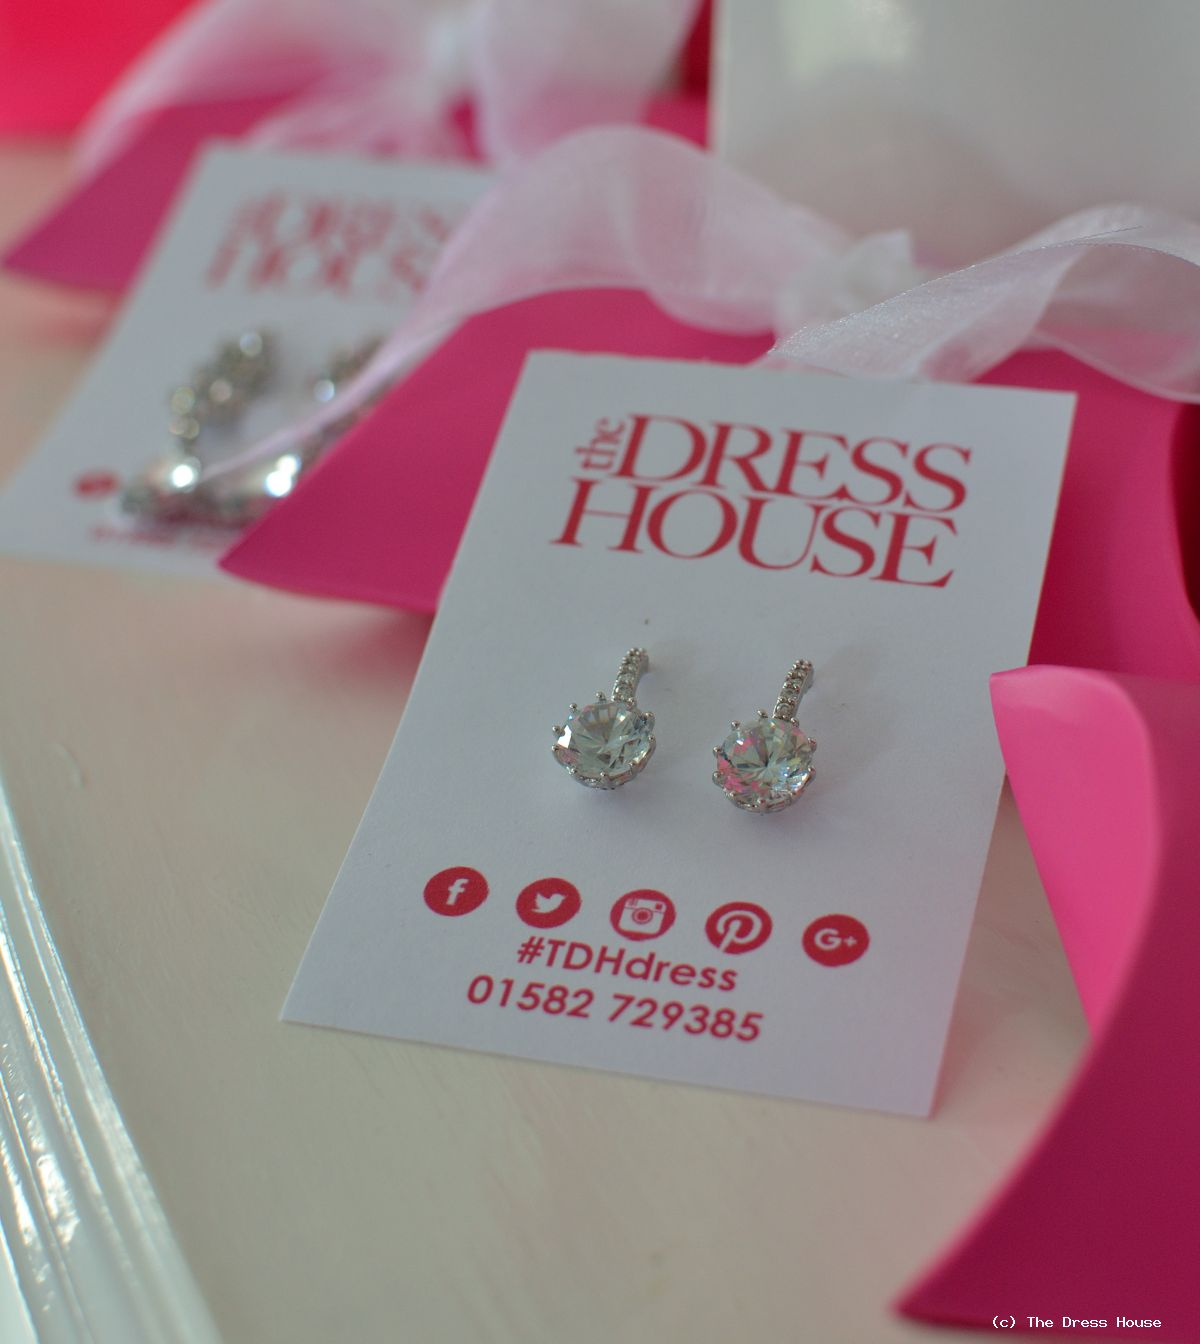 The dress house luton - Enlarge A Bridal Gift From The Dress House